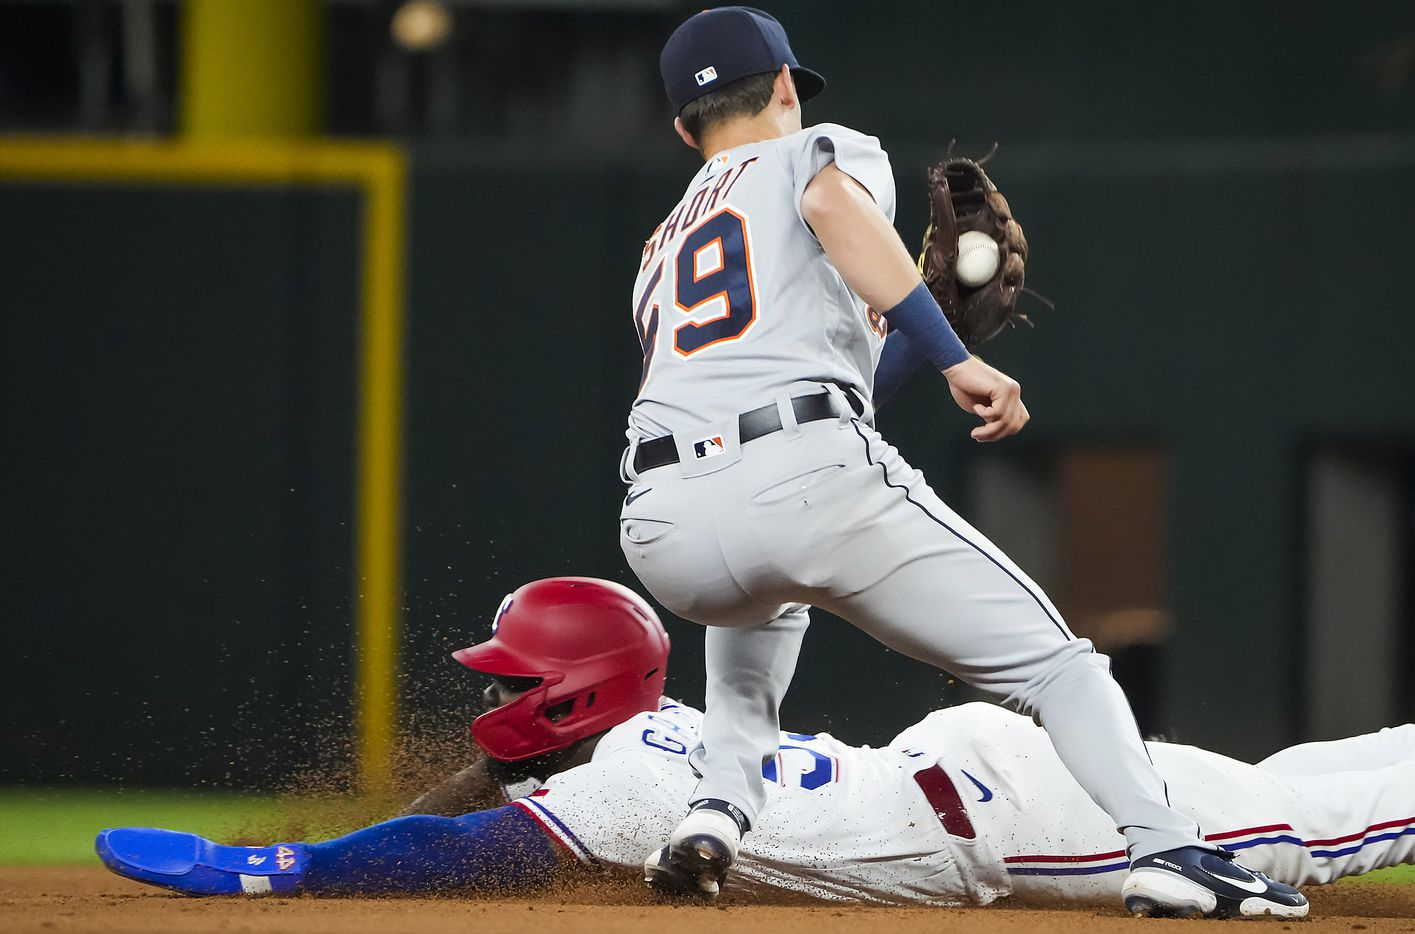 Texas Rangers center fielder Adolis Garcia is out at second base on a stolen base attempt as Detroit Tigers shortstop Zack Short prepares to make the tag during the fourth inning at Globe Life Field on Tuesday, July 6, 2021.